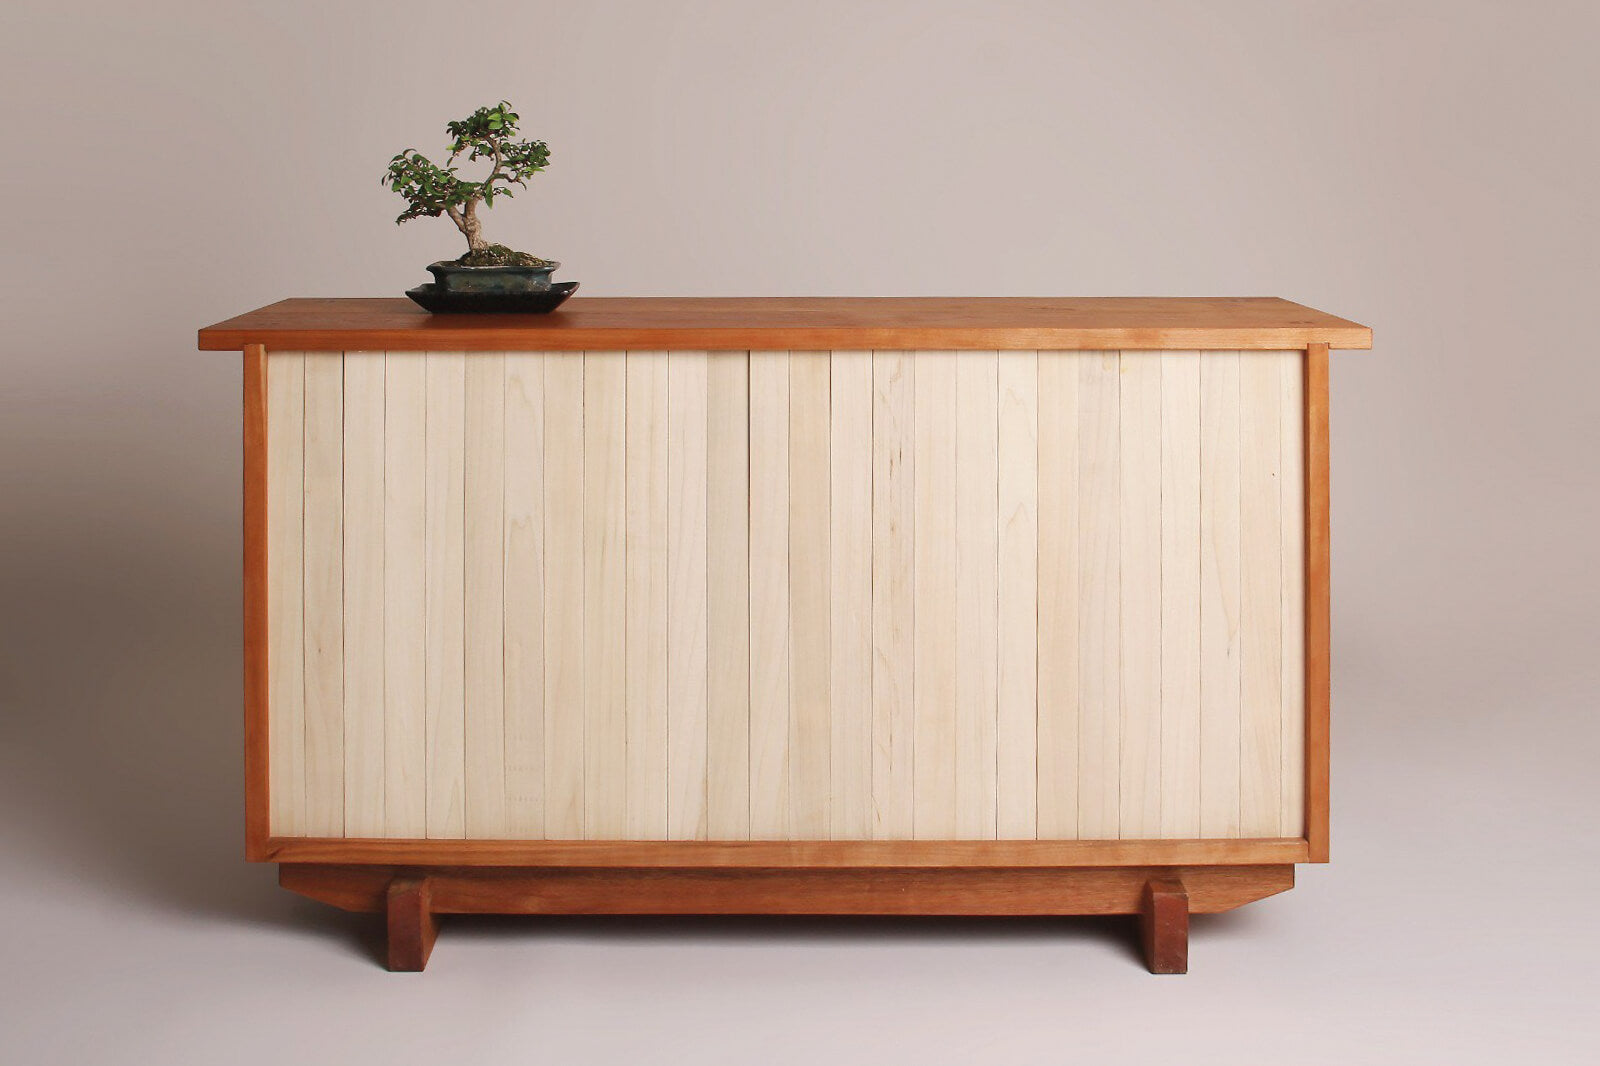 Poplar and cherry wood cabinet.